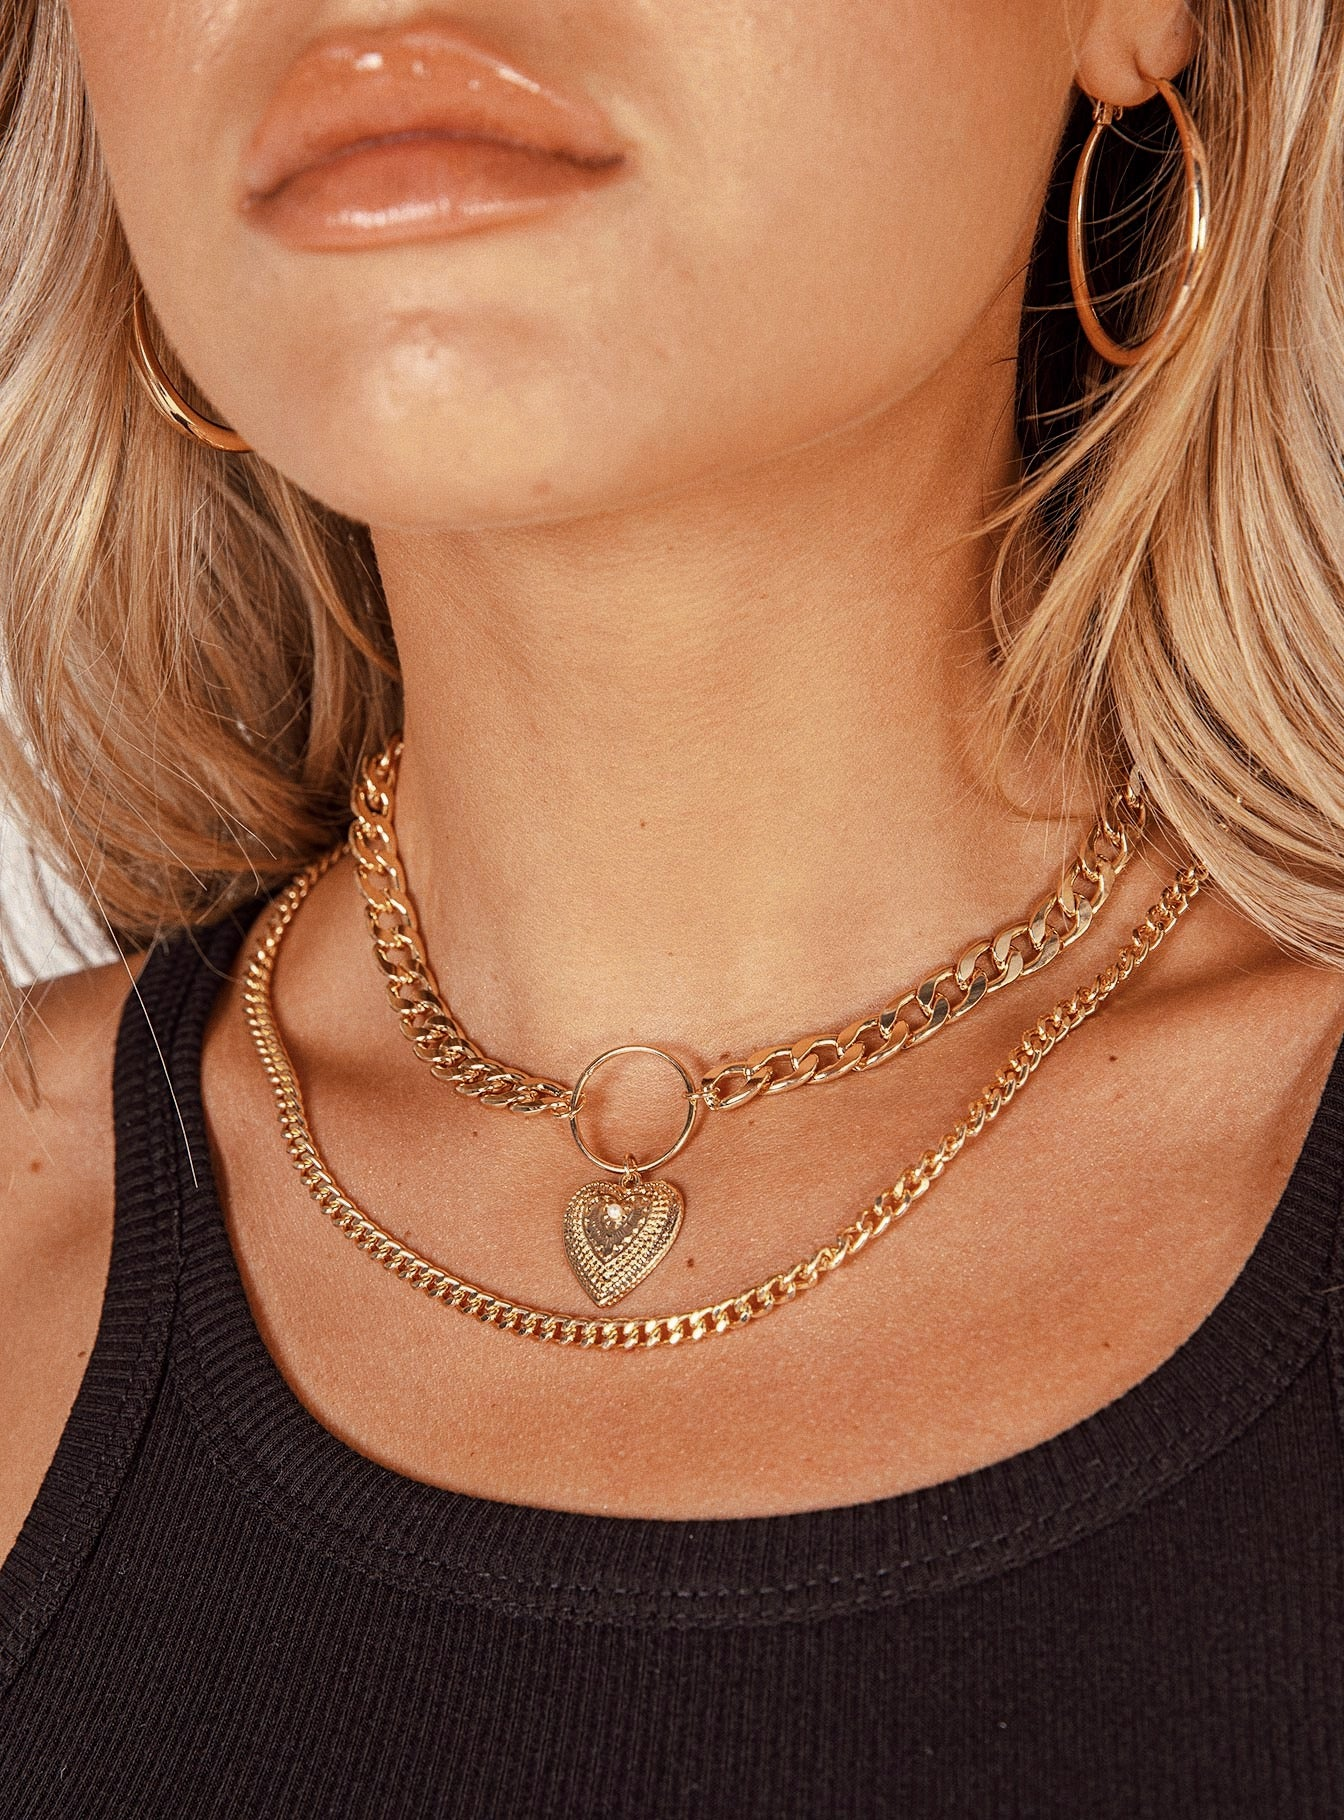 Risky Business Necklace